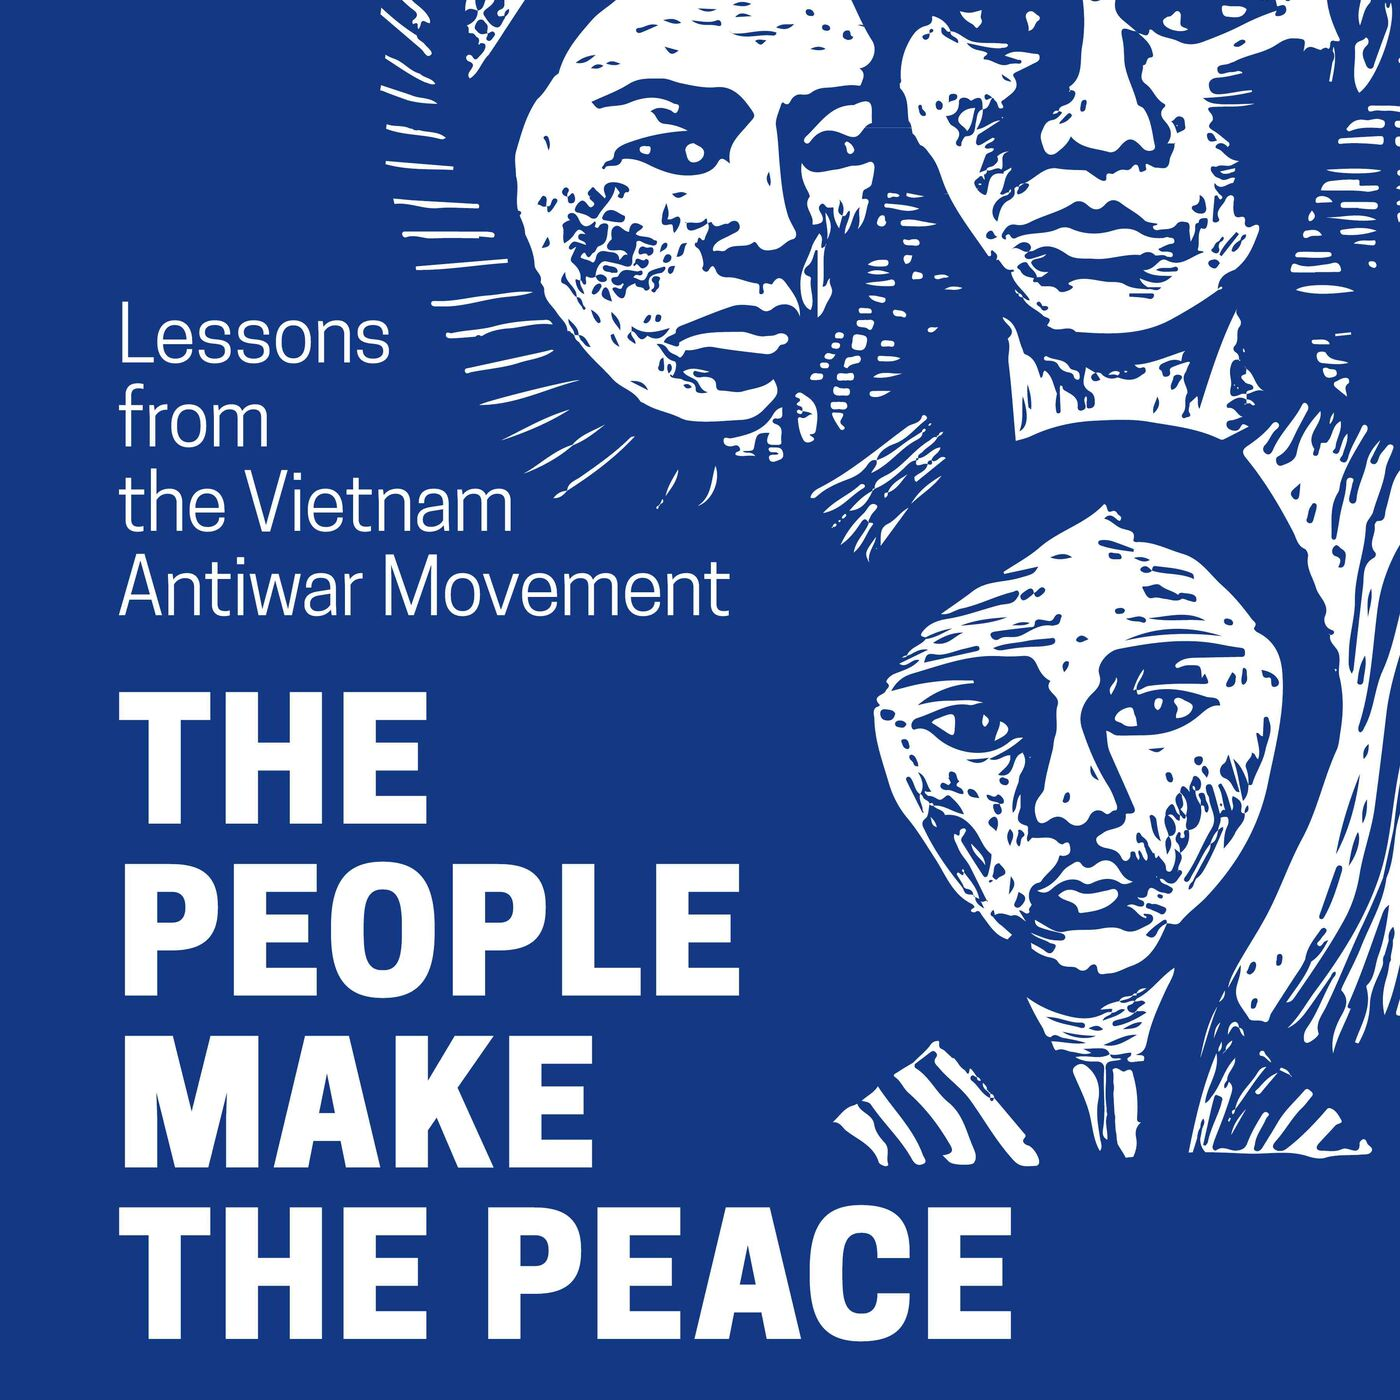 Frank Joyce discusses issues in the antiwar movement with Helena Cobban